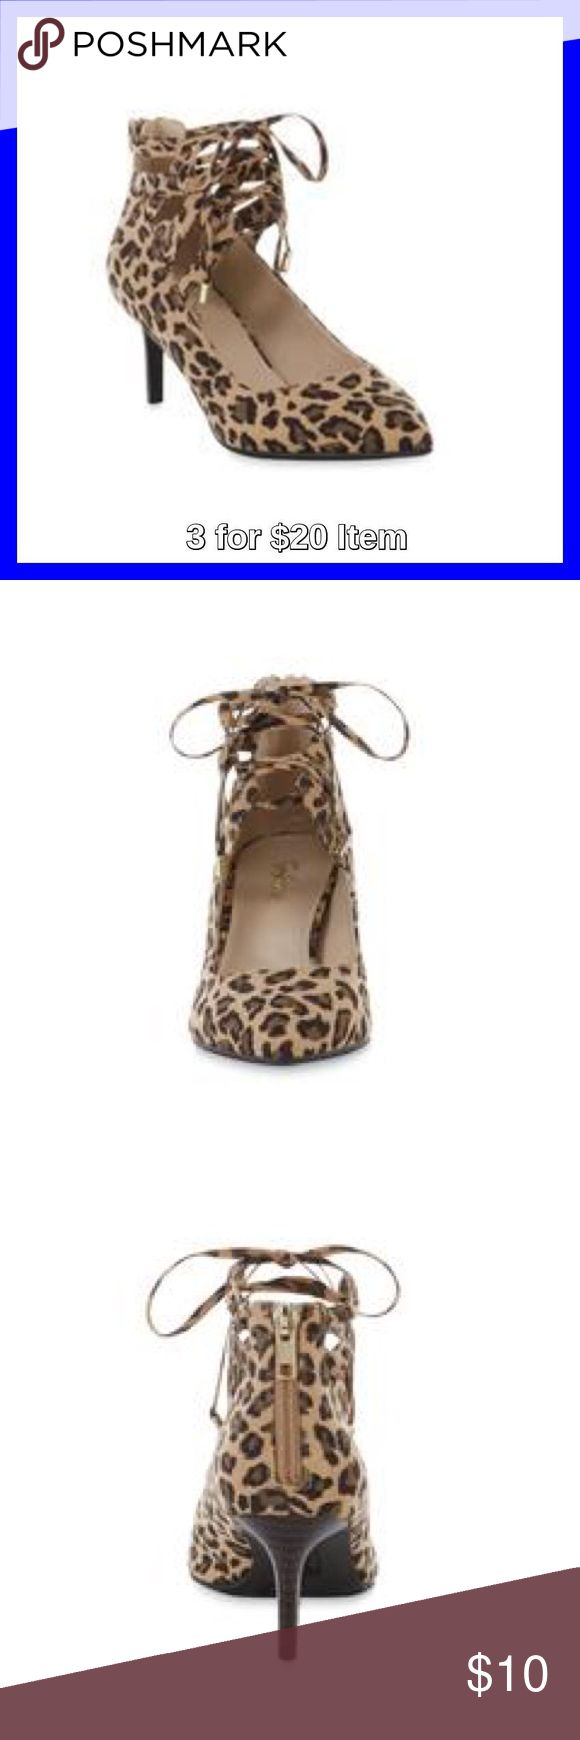 Jaclyn Smith Tamara Leopard Print Ghillie Pump Sale! Price is firm unless 3 for $20 bundled. The elegant lace-up design of these pumps offers an adjustable fit, while the heel zipper lets you dress quickly. The 2 1/2 in taper heel gives you just enough lift to keep you feeling confident and stable. Features pointed toe, synthetic suede upper, padded footbed and rubber sole. Jaclyn Smith Shoes Heels